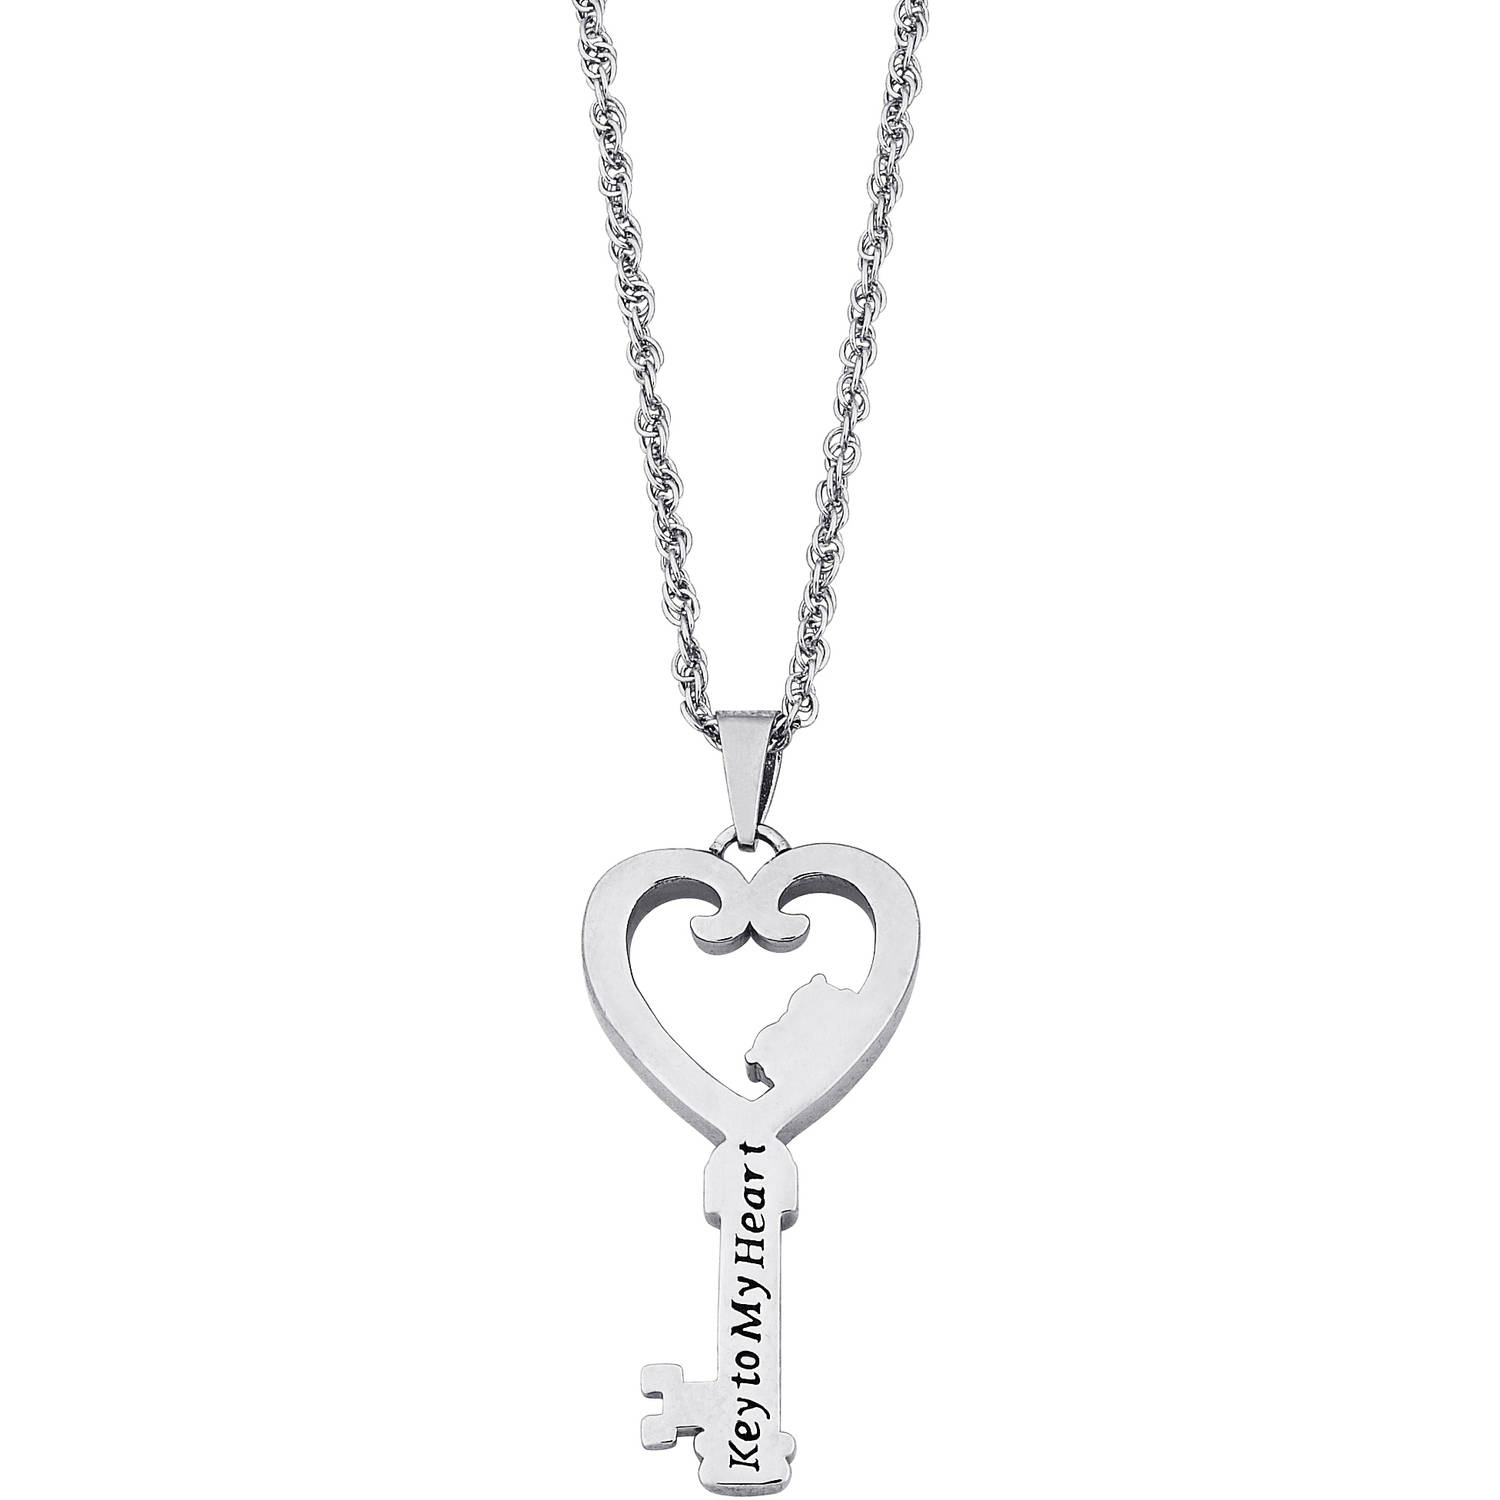 Personalized Couples Name & Birthstone Heart Key Diamond Accent Necklace